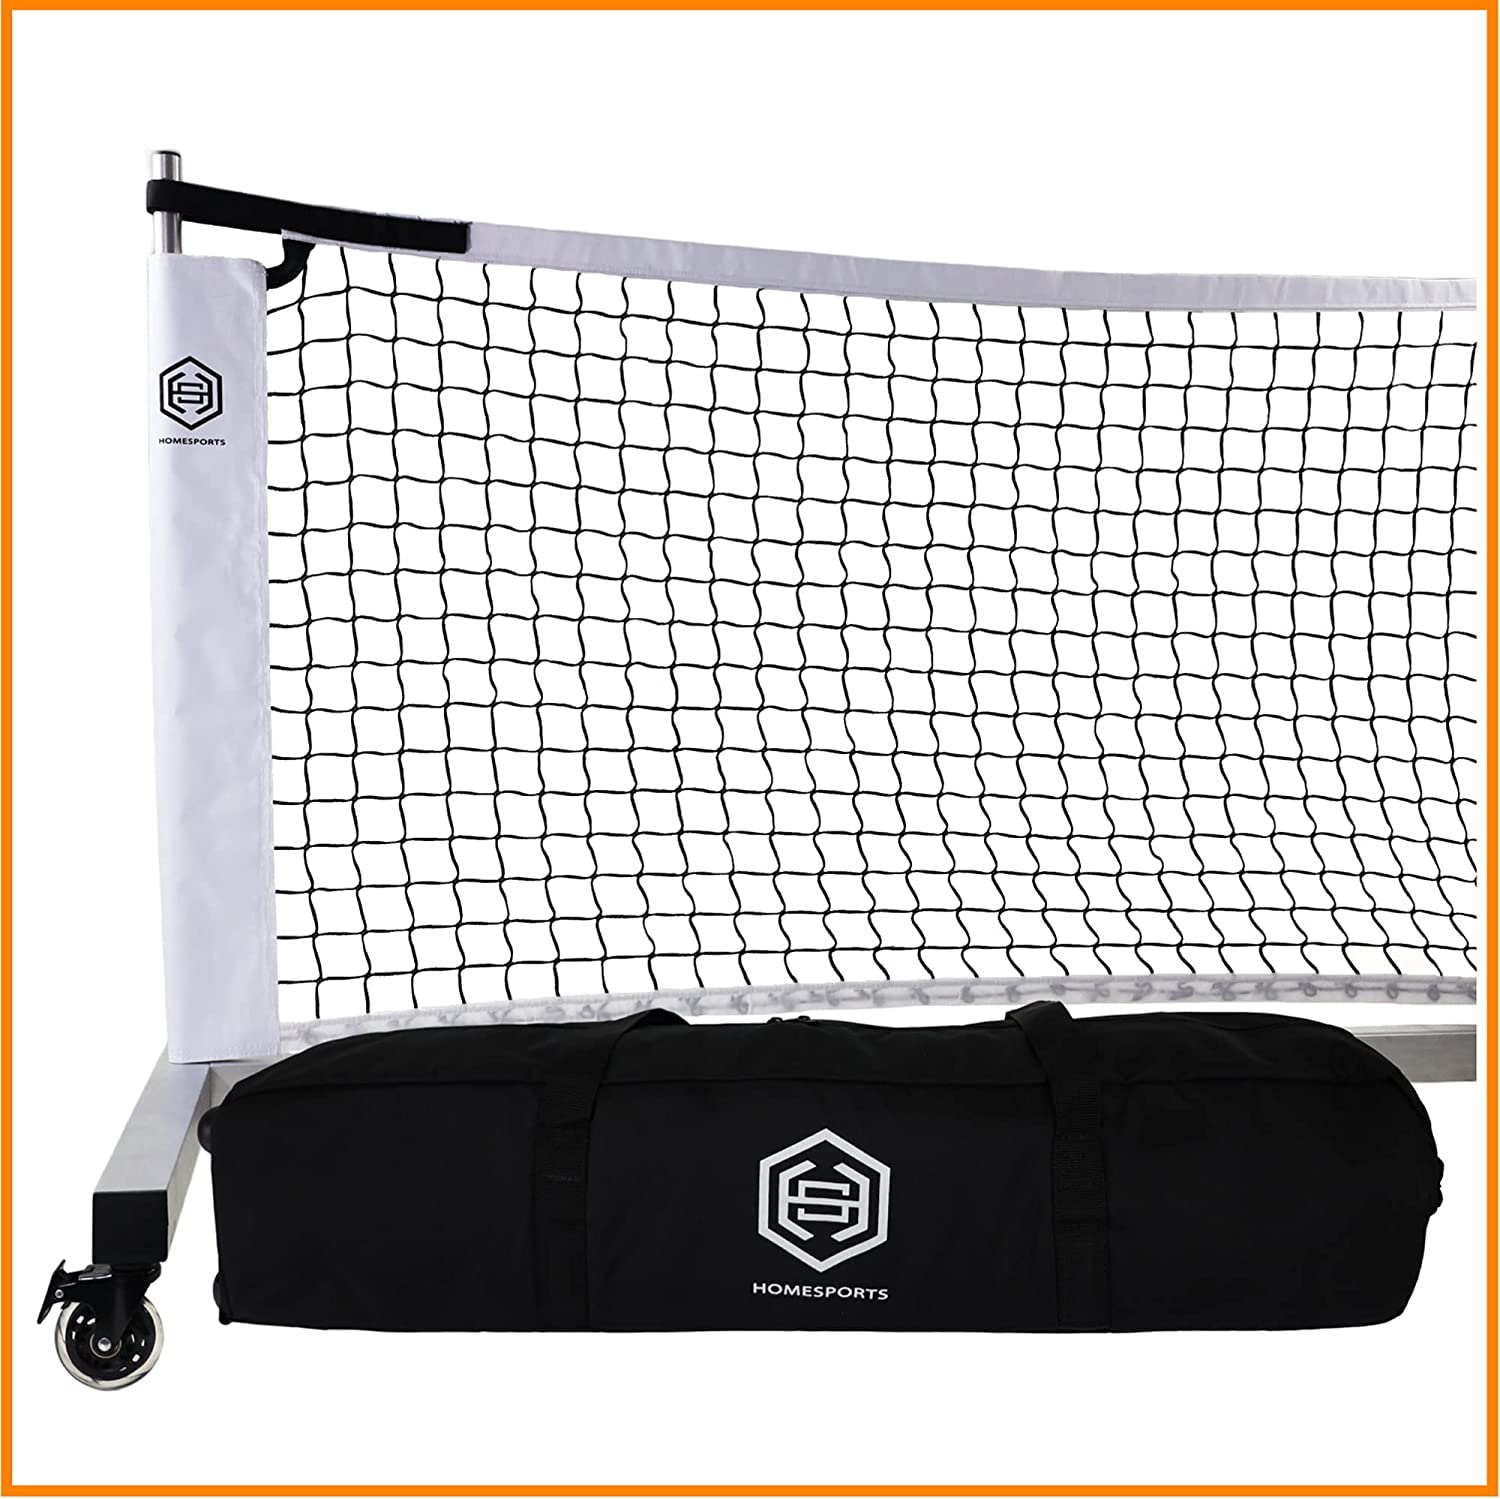 Cheap DOMINATOR Portable Pickleball Net Selling rankings w Locking Rolling Carry R Bag.